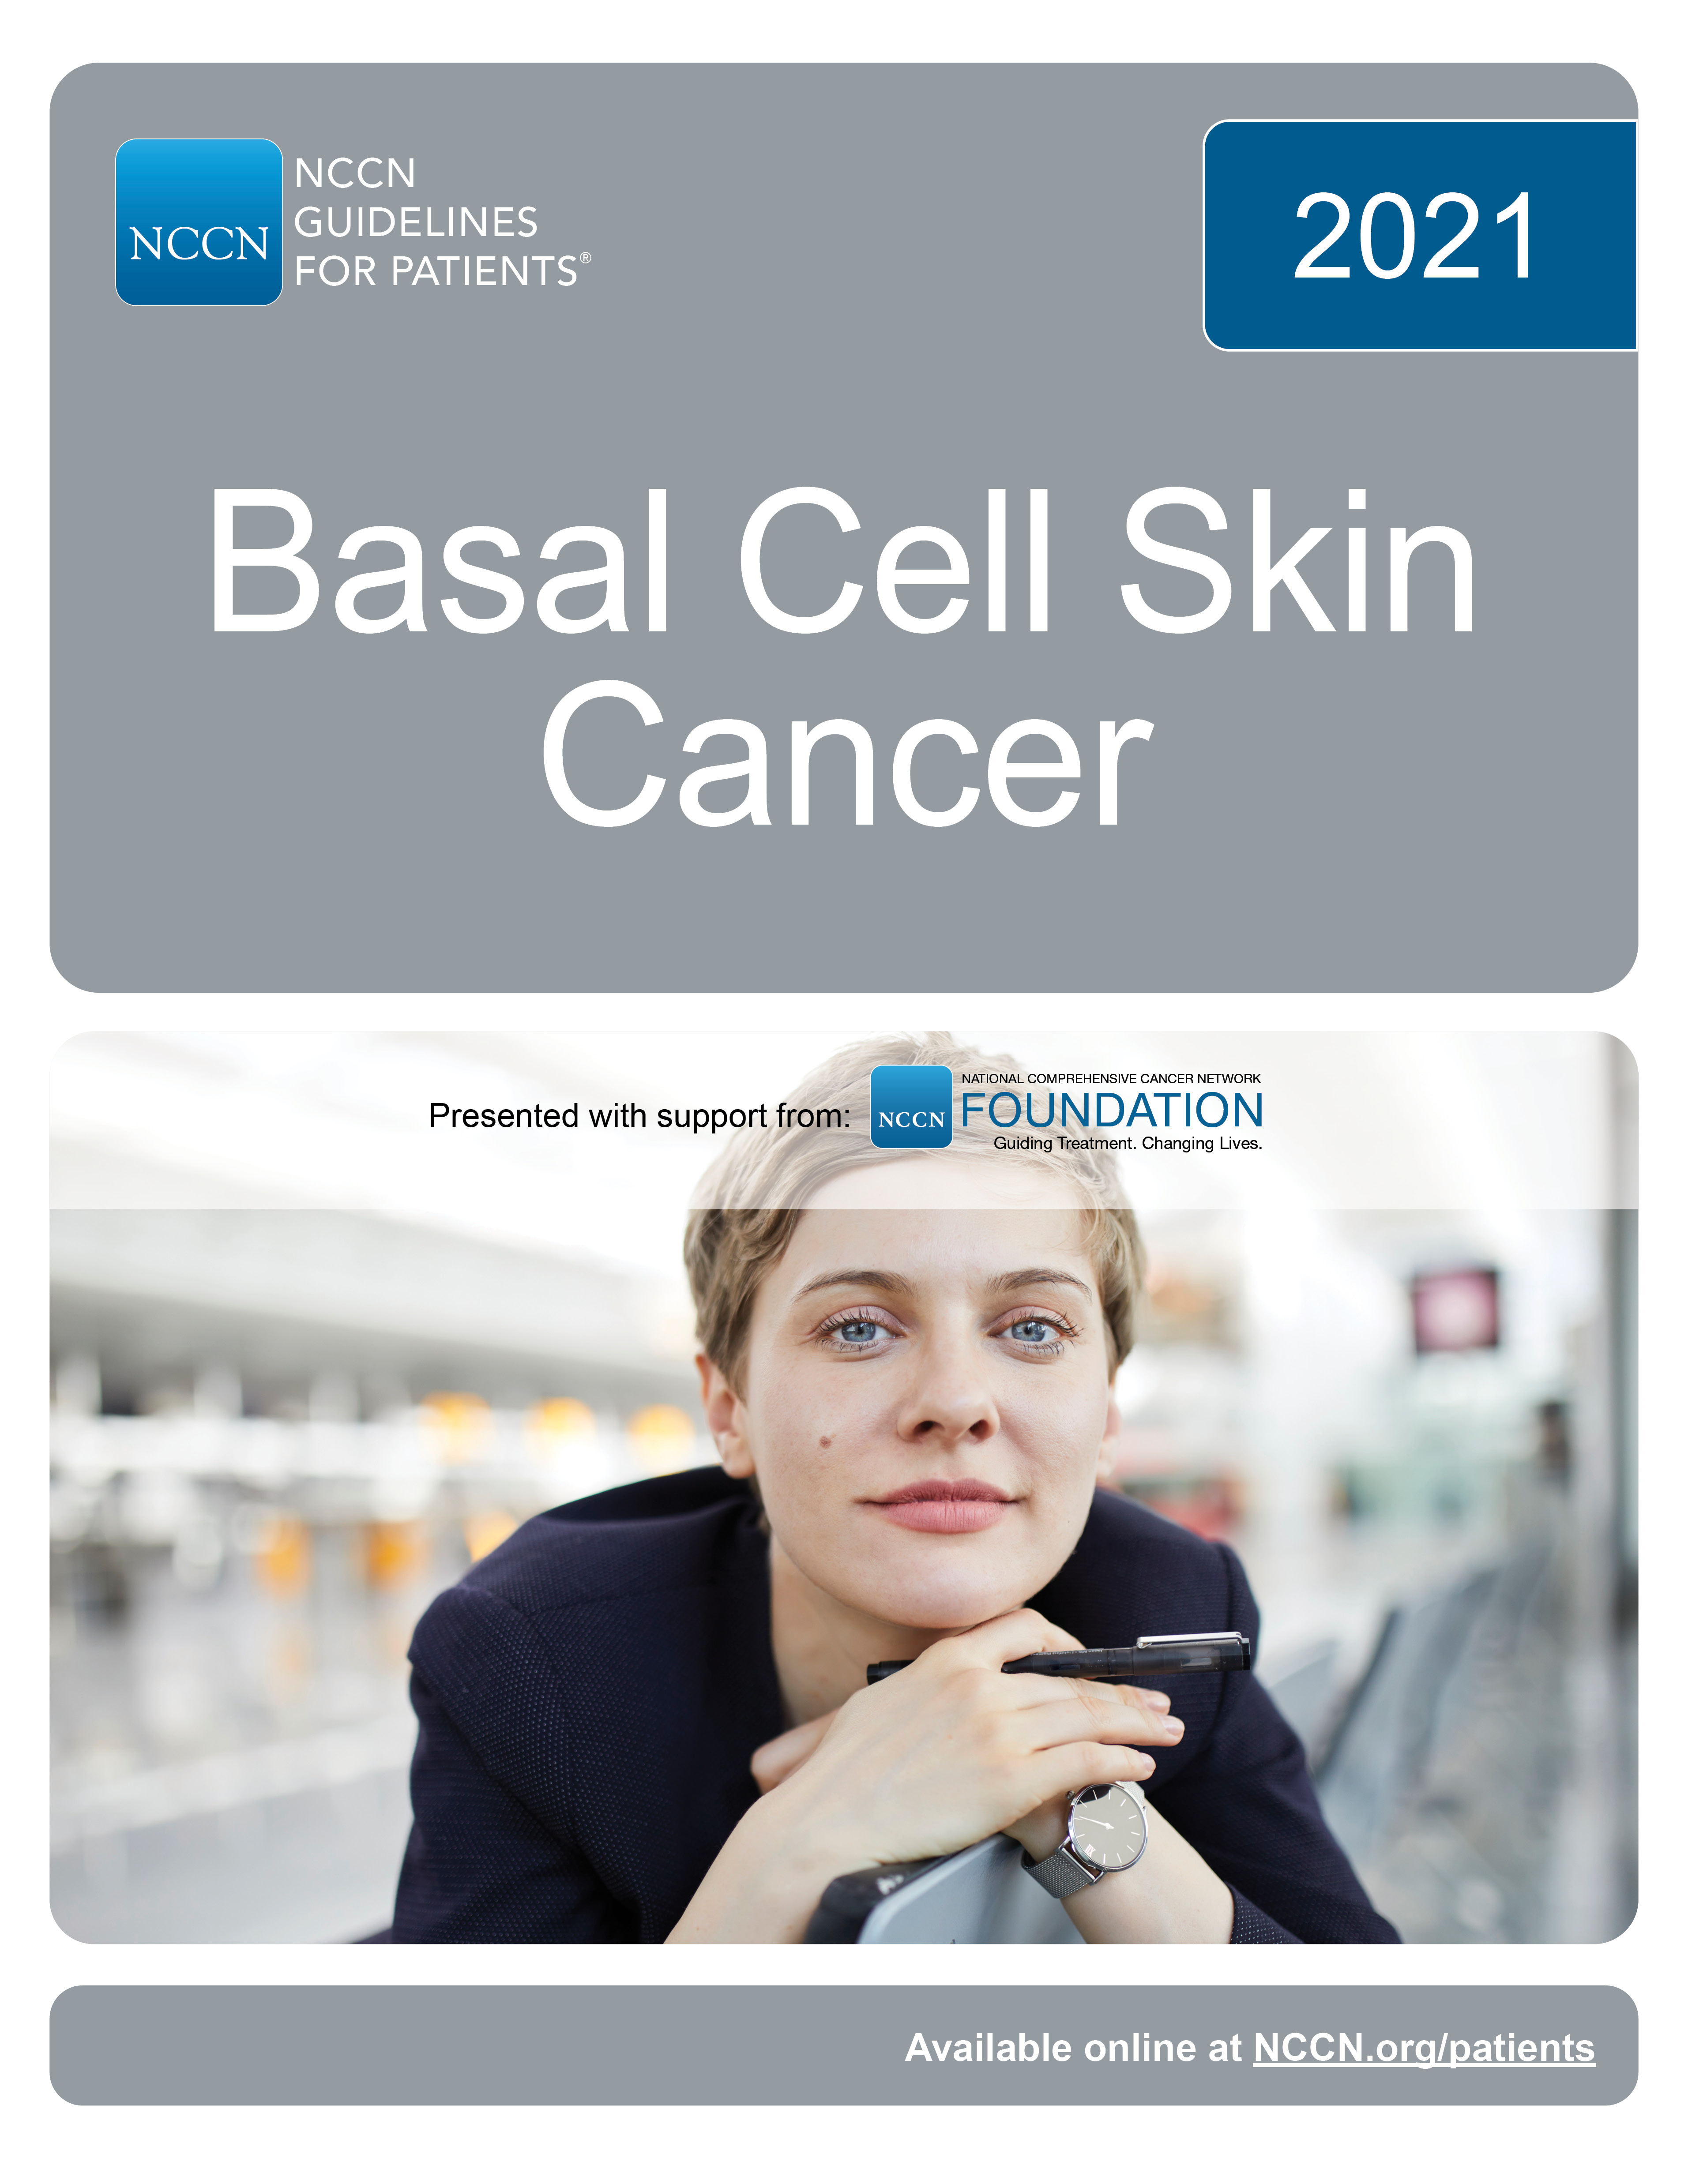 NCCN Guidelines for Patients: Basal Cell Skin Cancer